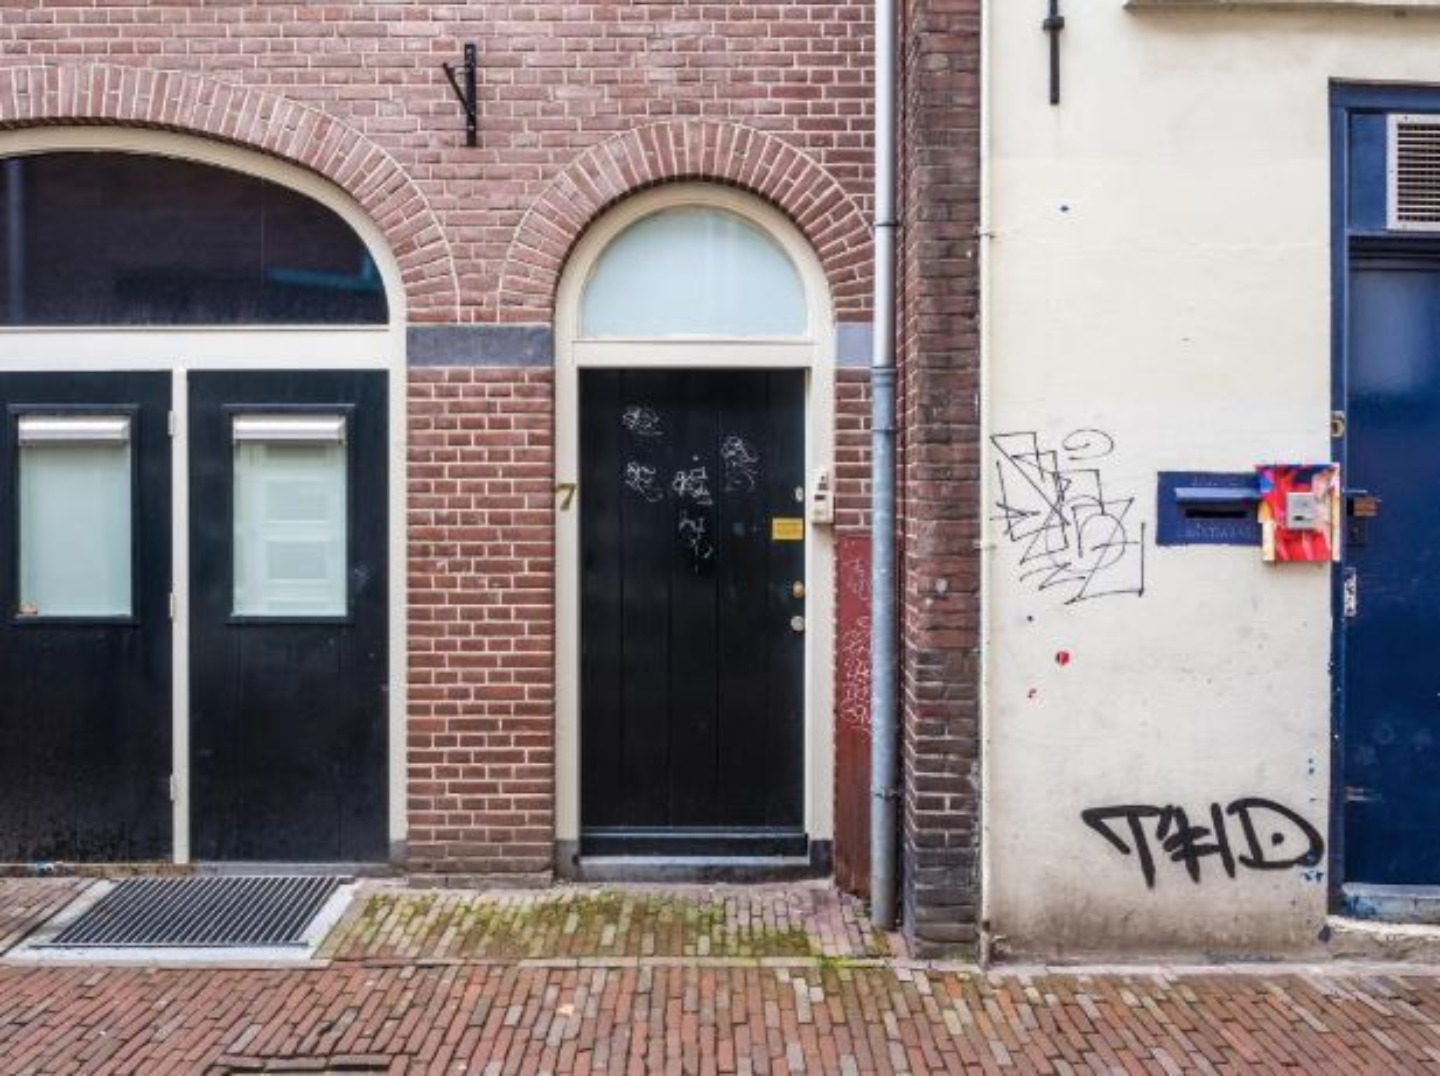 A sign on the side of a building at Rosendael.